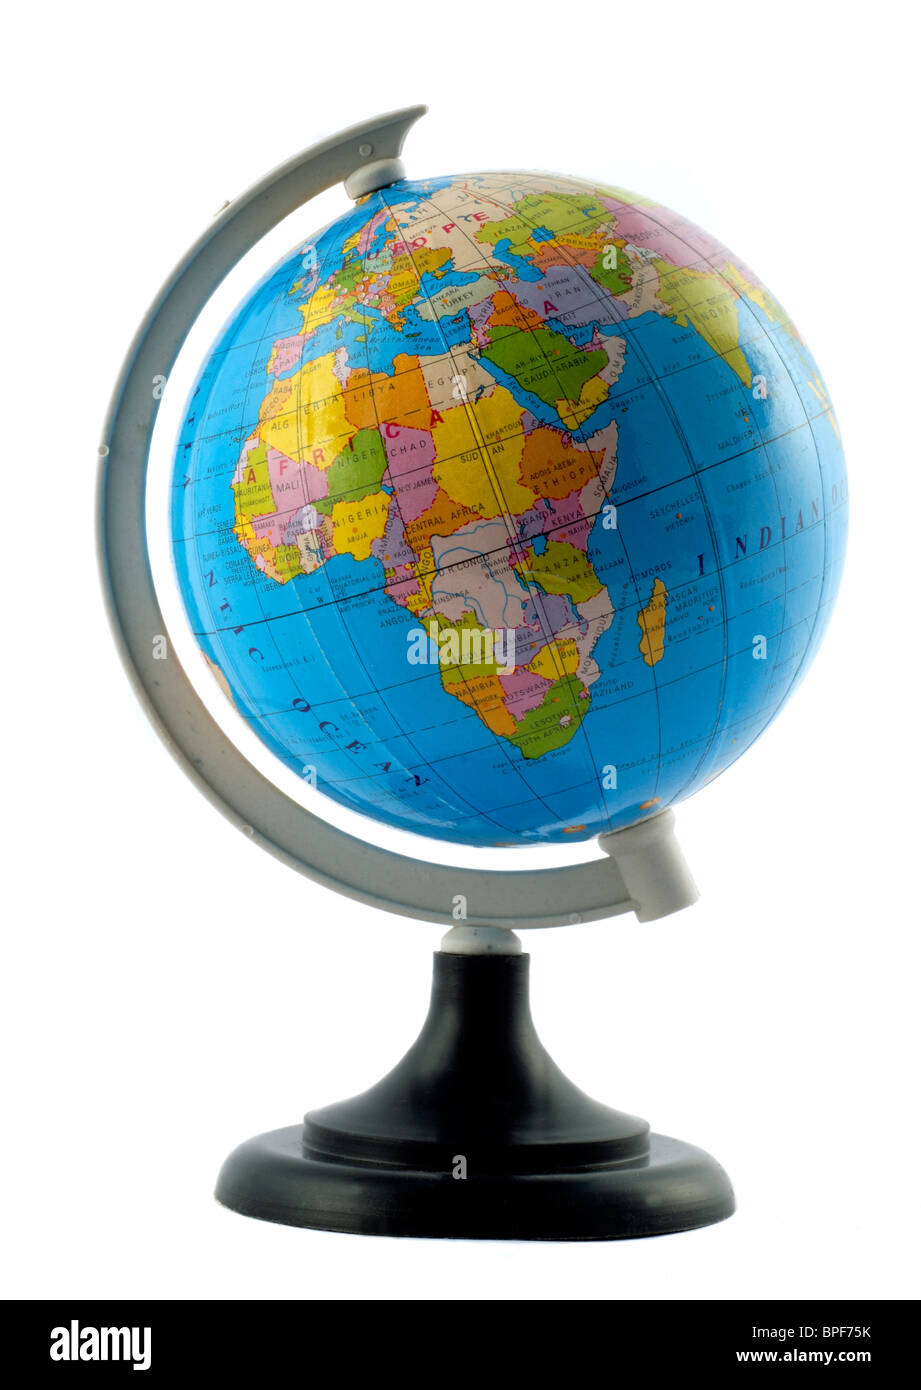 Earth globe stand africa stock photos earth globe stand africa a small globe of the world on a stand isolated on a white background stock gumiabroncs Images